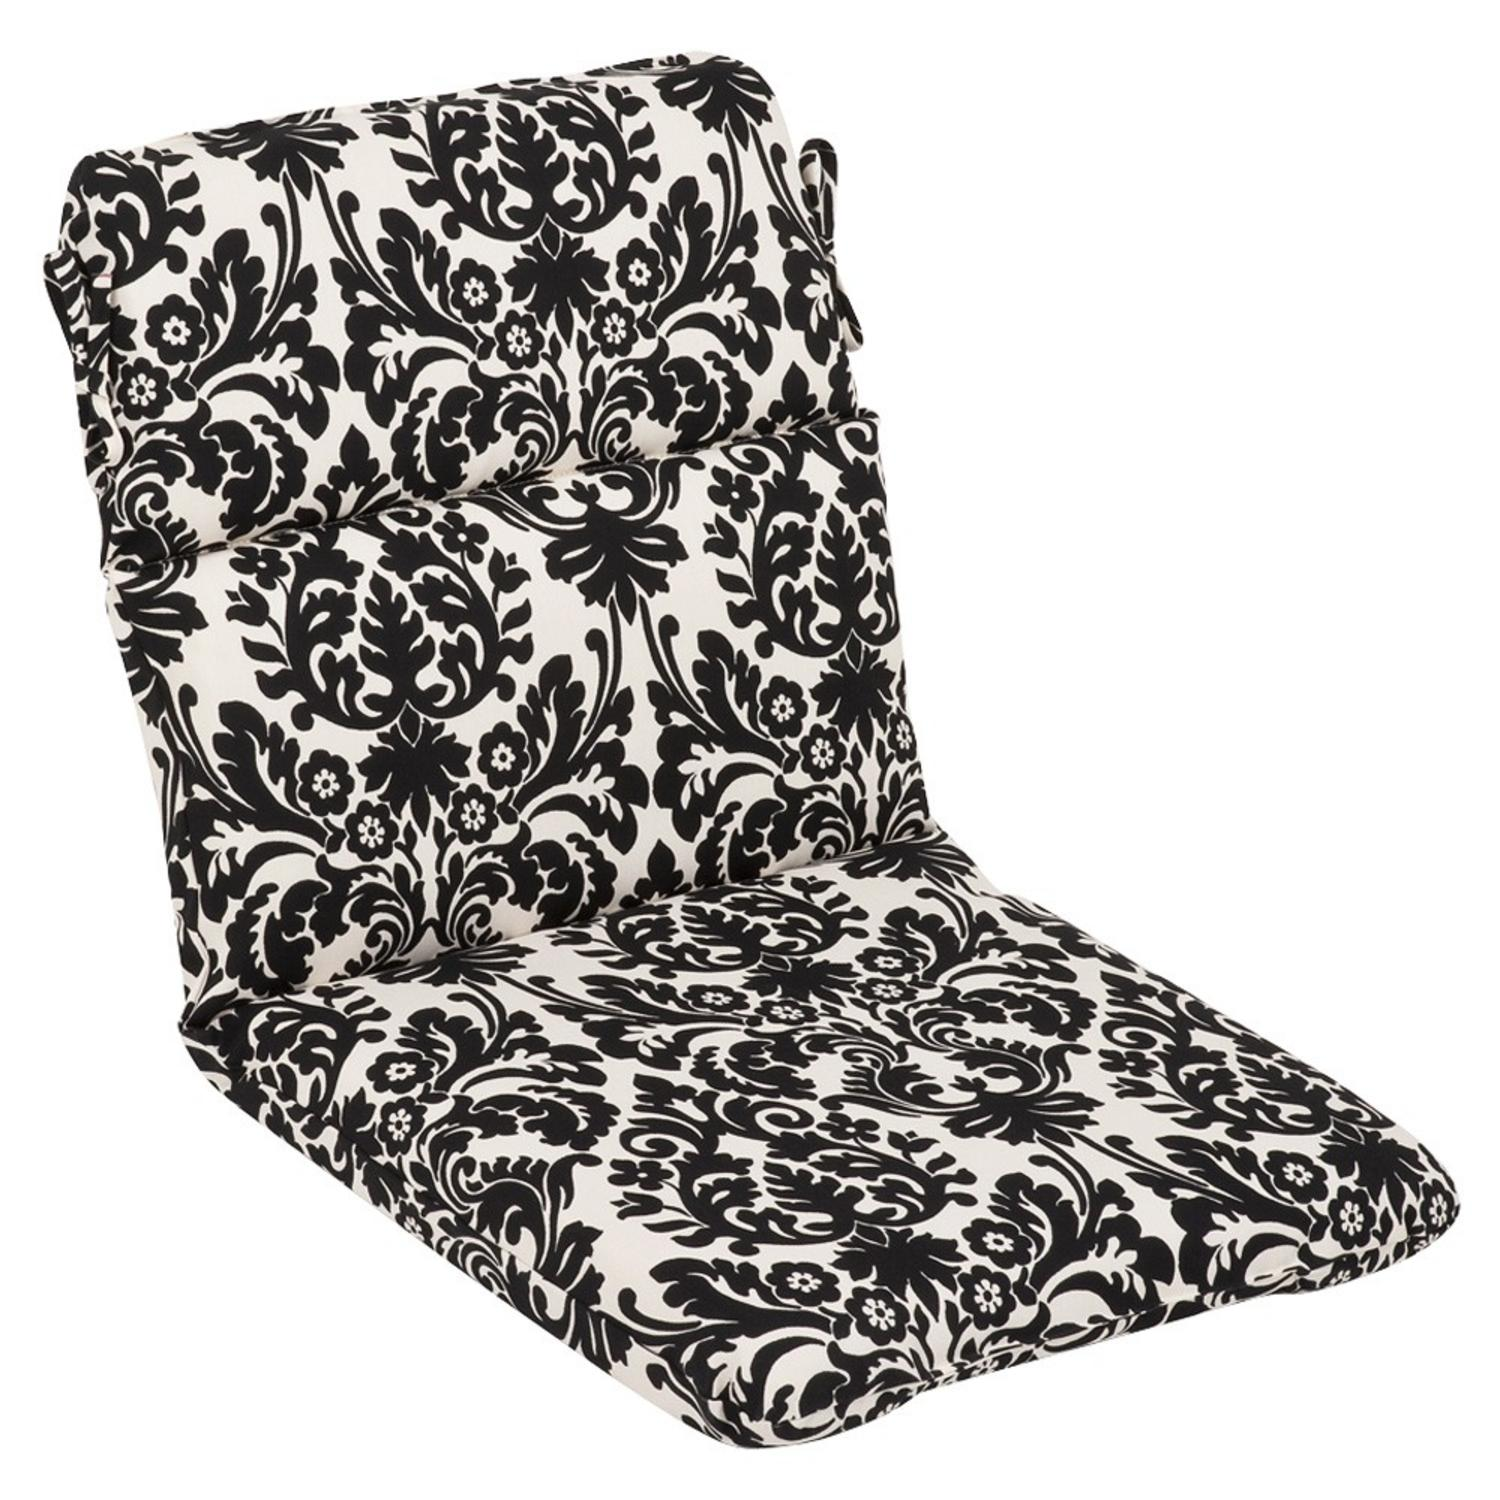 Outdoor Patio Furniture High Back Chair Cushion - Dramatic Black & Cream Damask